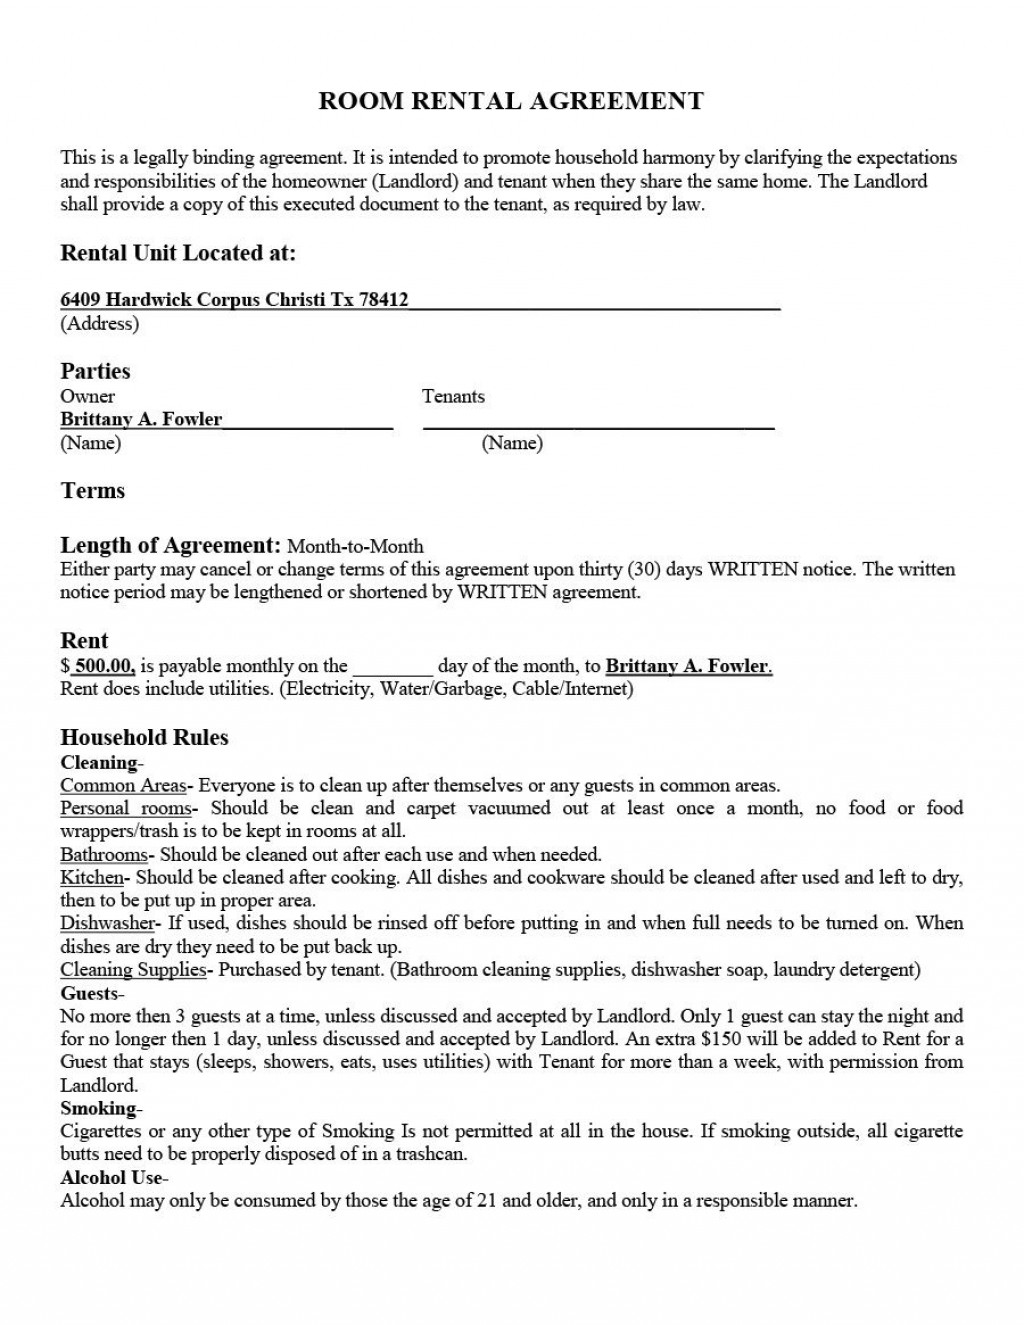 008 Fearsome Generic Room Rental Agreement Free High Definition  PrintableLarge